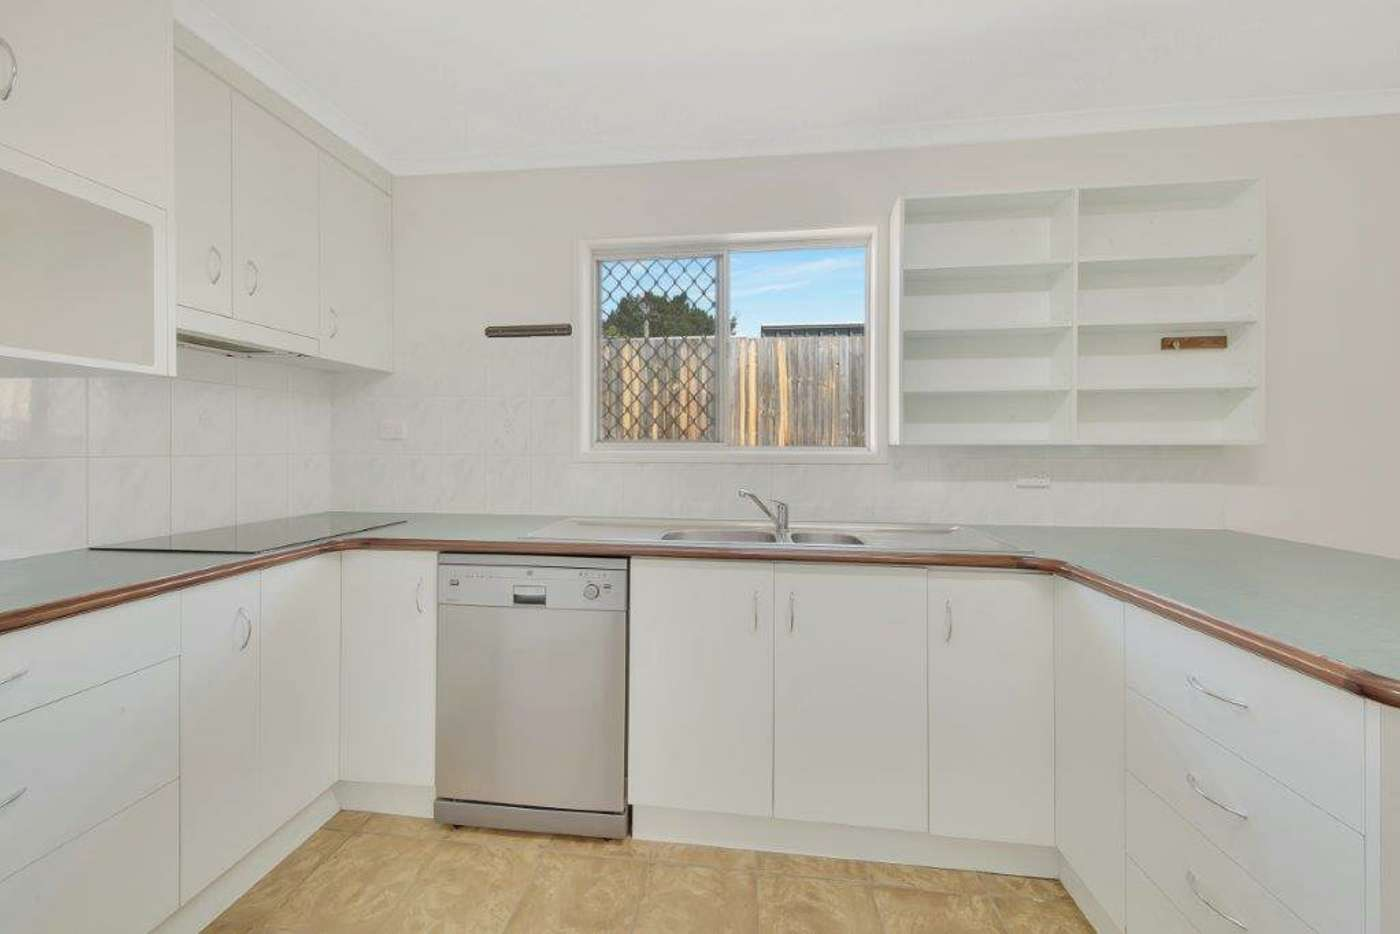 Seventh view of Homely house listing, 34 Venus Street, Telina QLD 4680